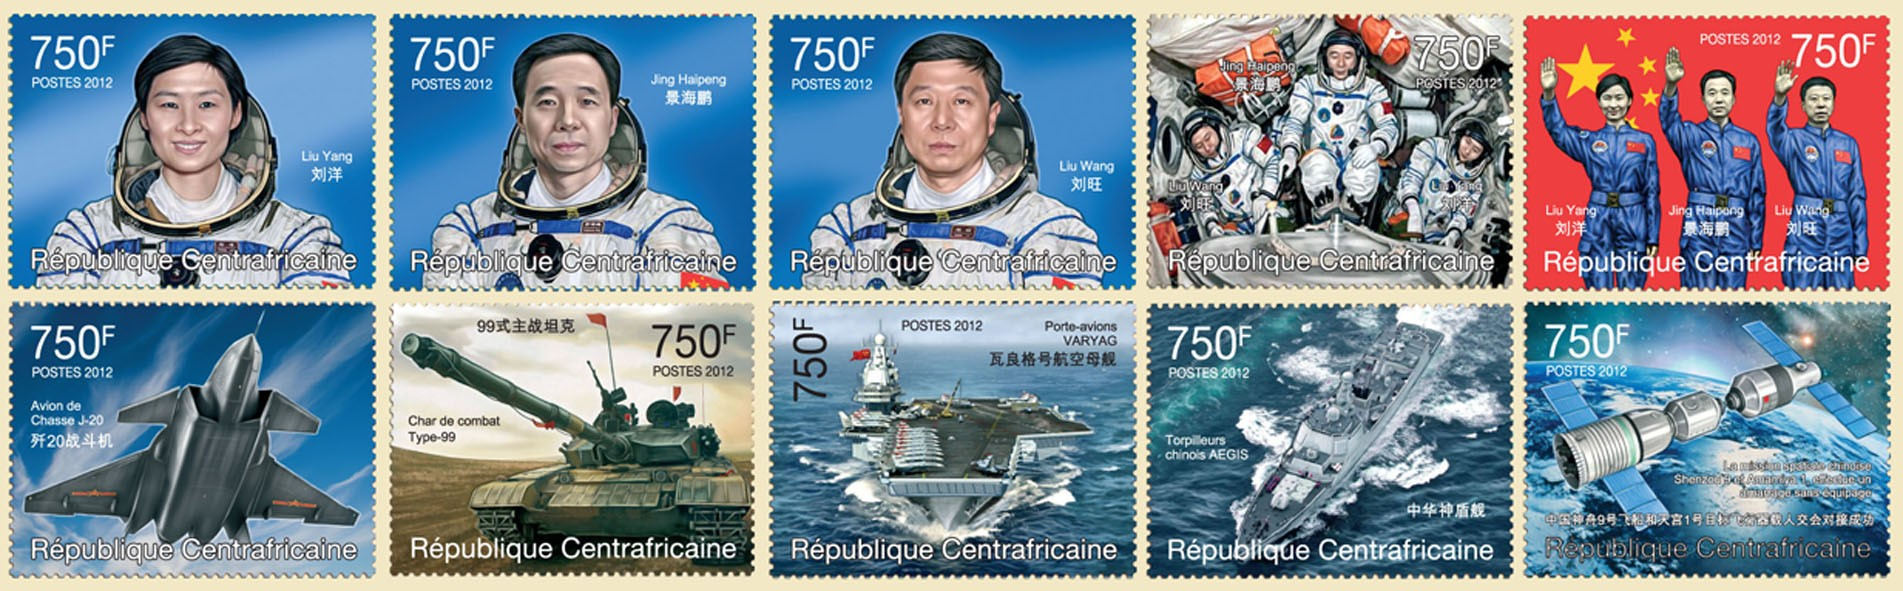 Chinese Space Missions Shezon  9 and Amamiya 1, 80th Anniversary of Army of Liberation - Issue of Central African republic postage stamps